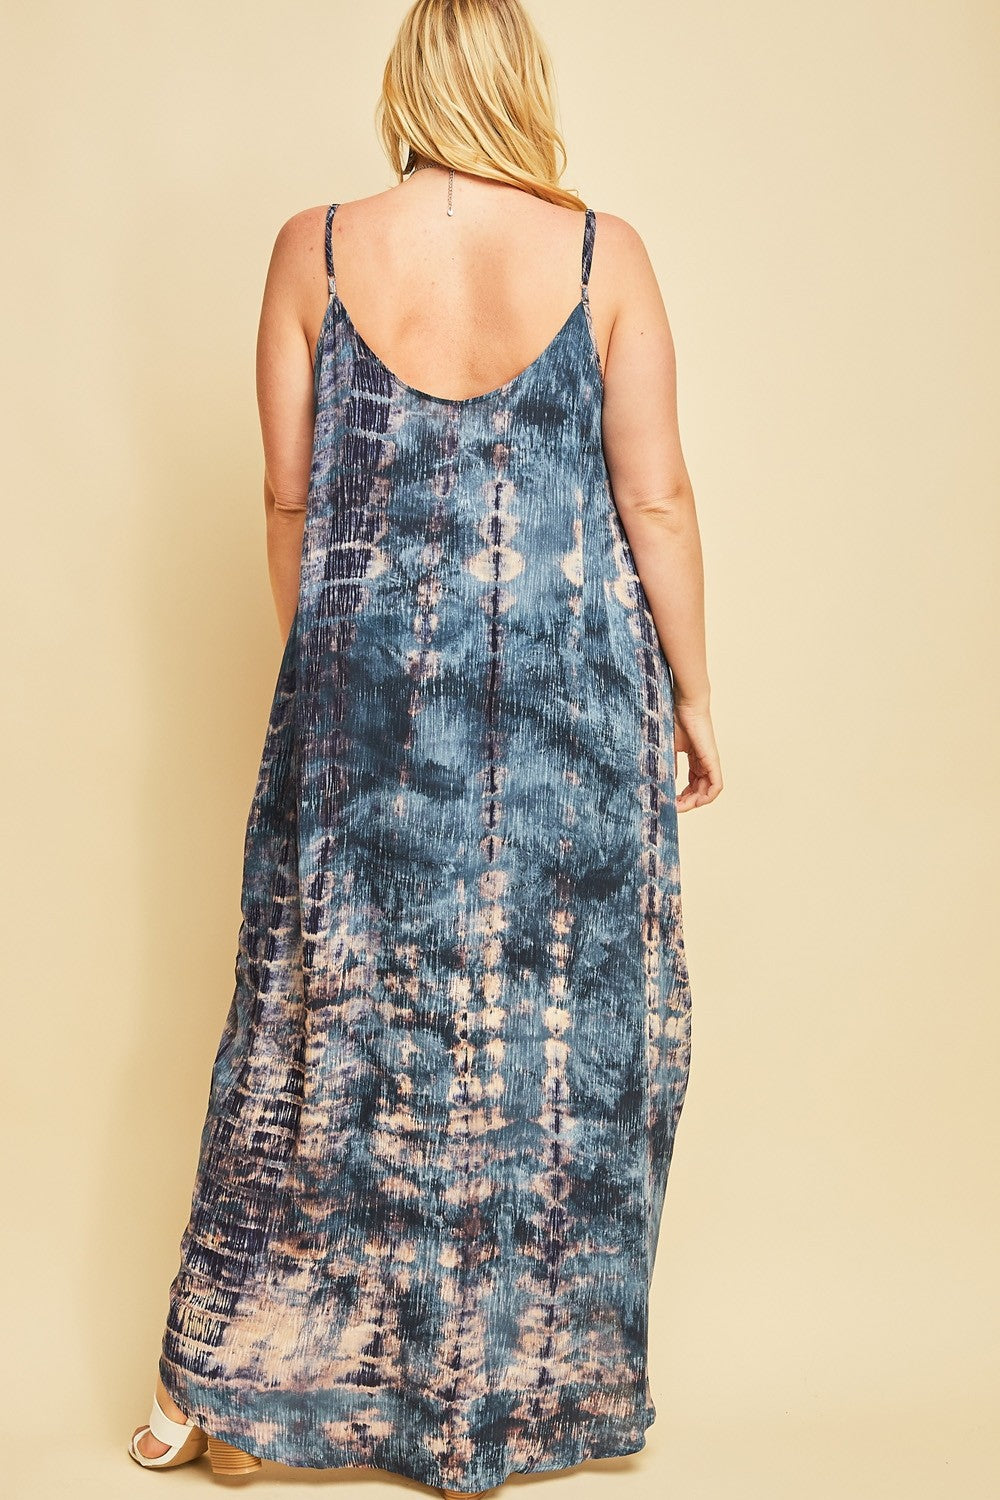 Back view plus size woman wearing sleeveless teal multi maxi dress with side pockets